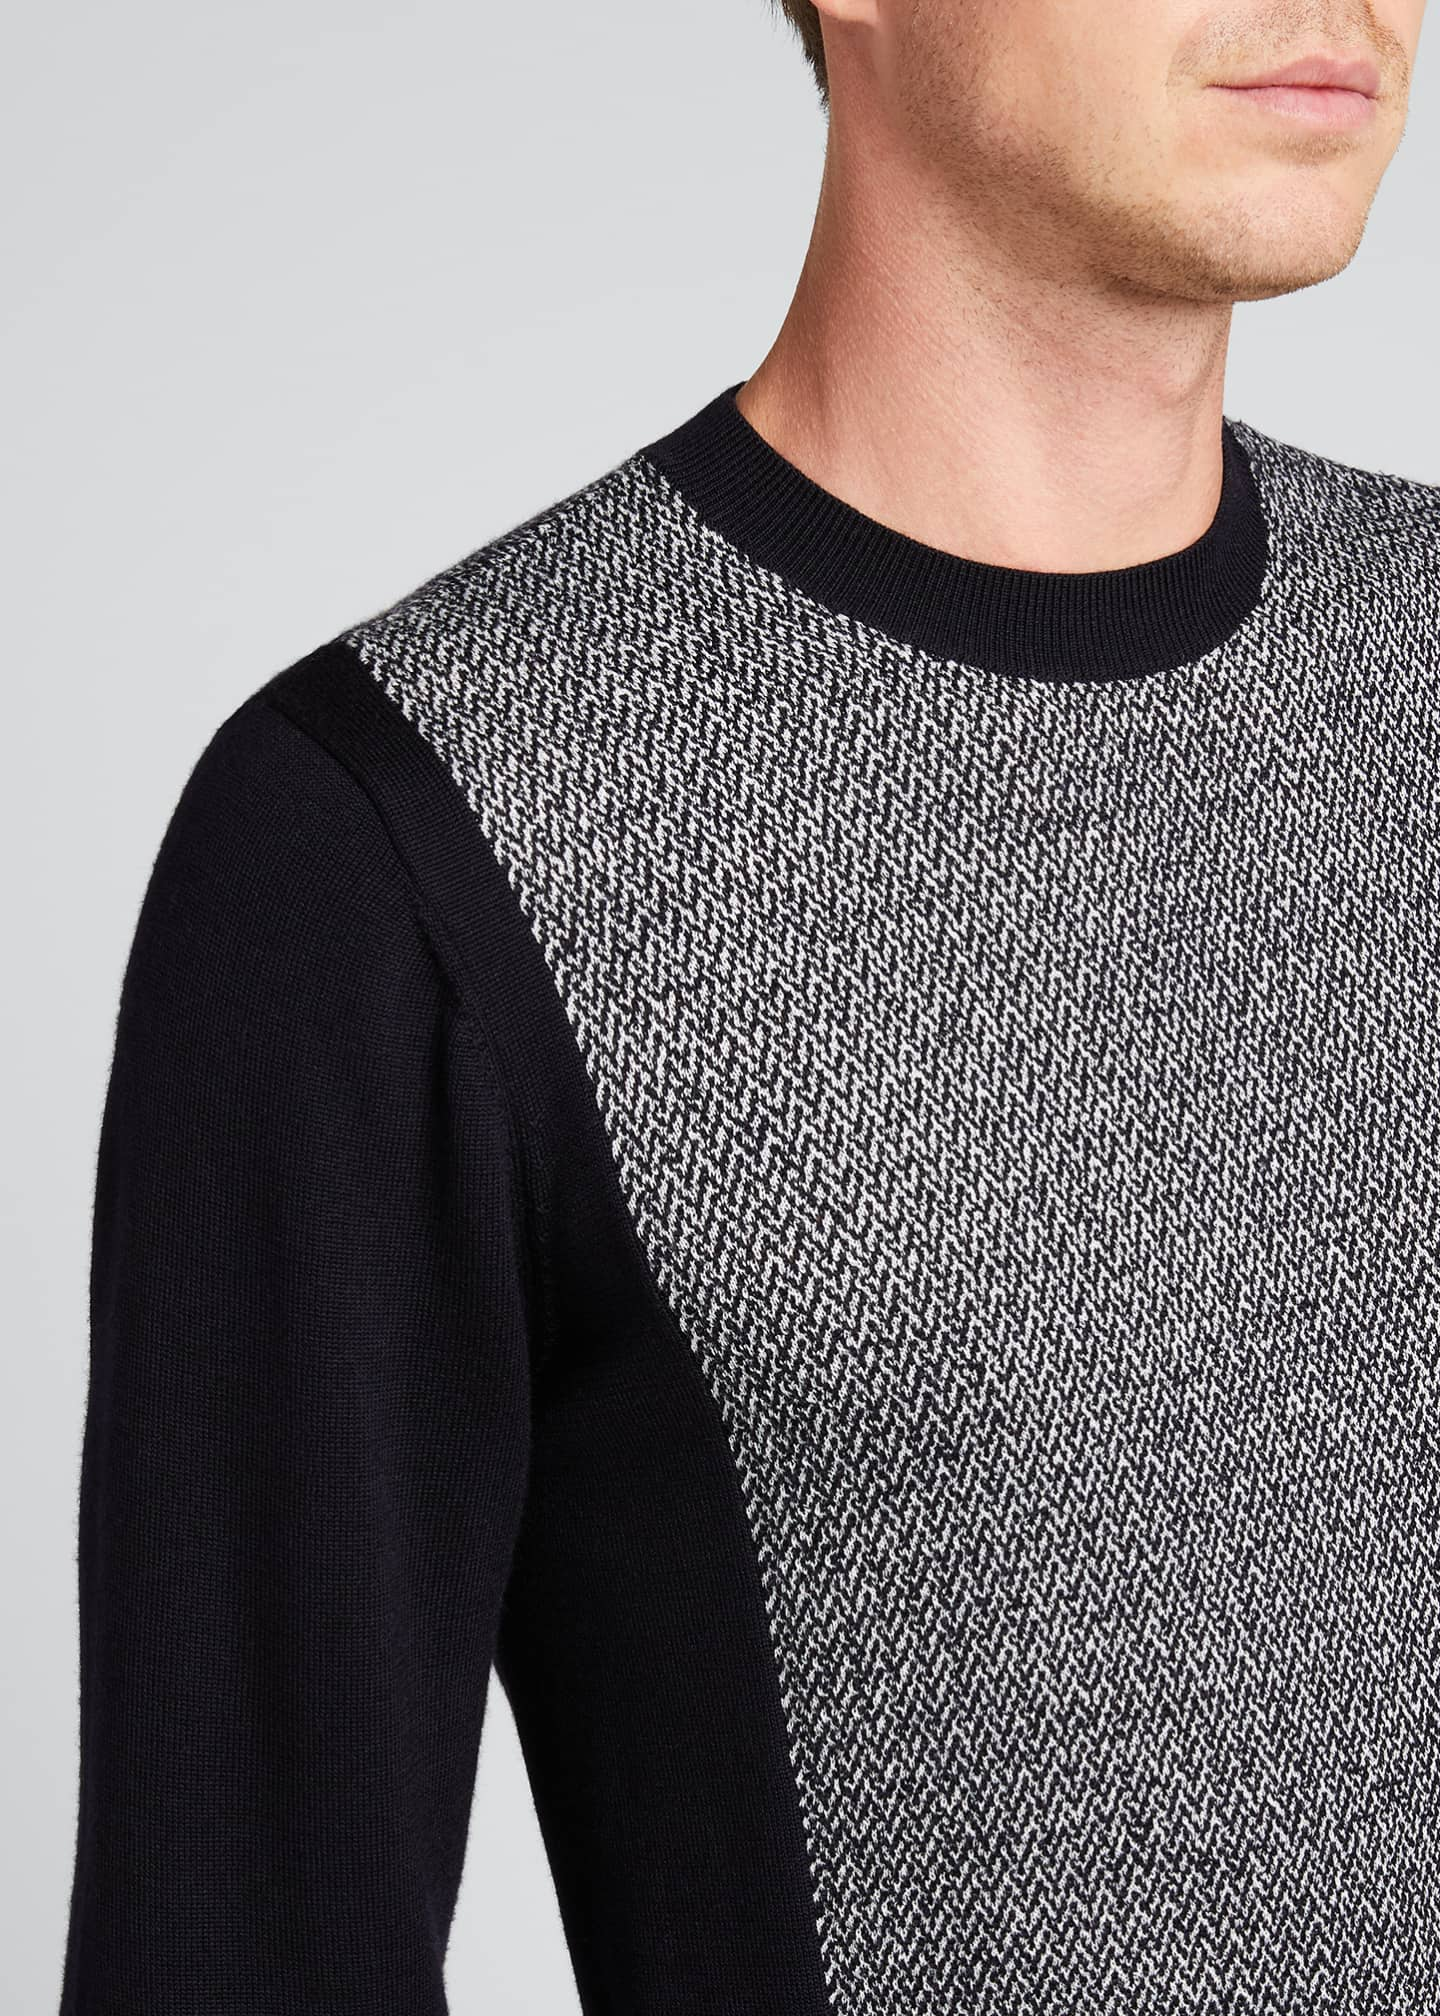 Image 4 of 4: Men's Chevron/Solid Wool Sweater